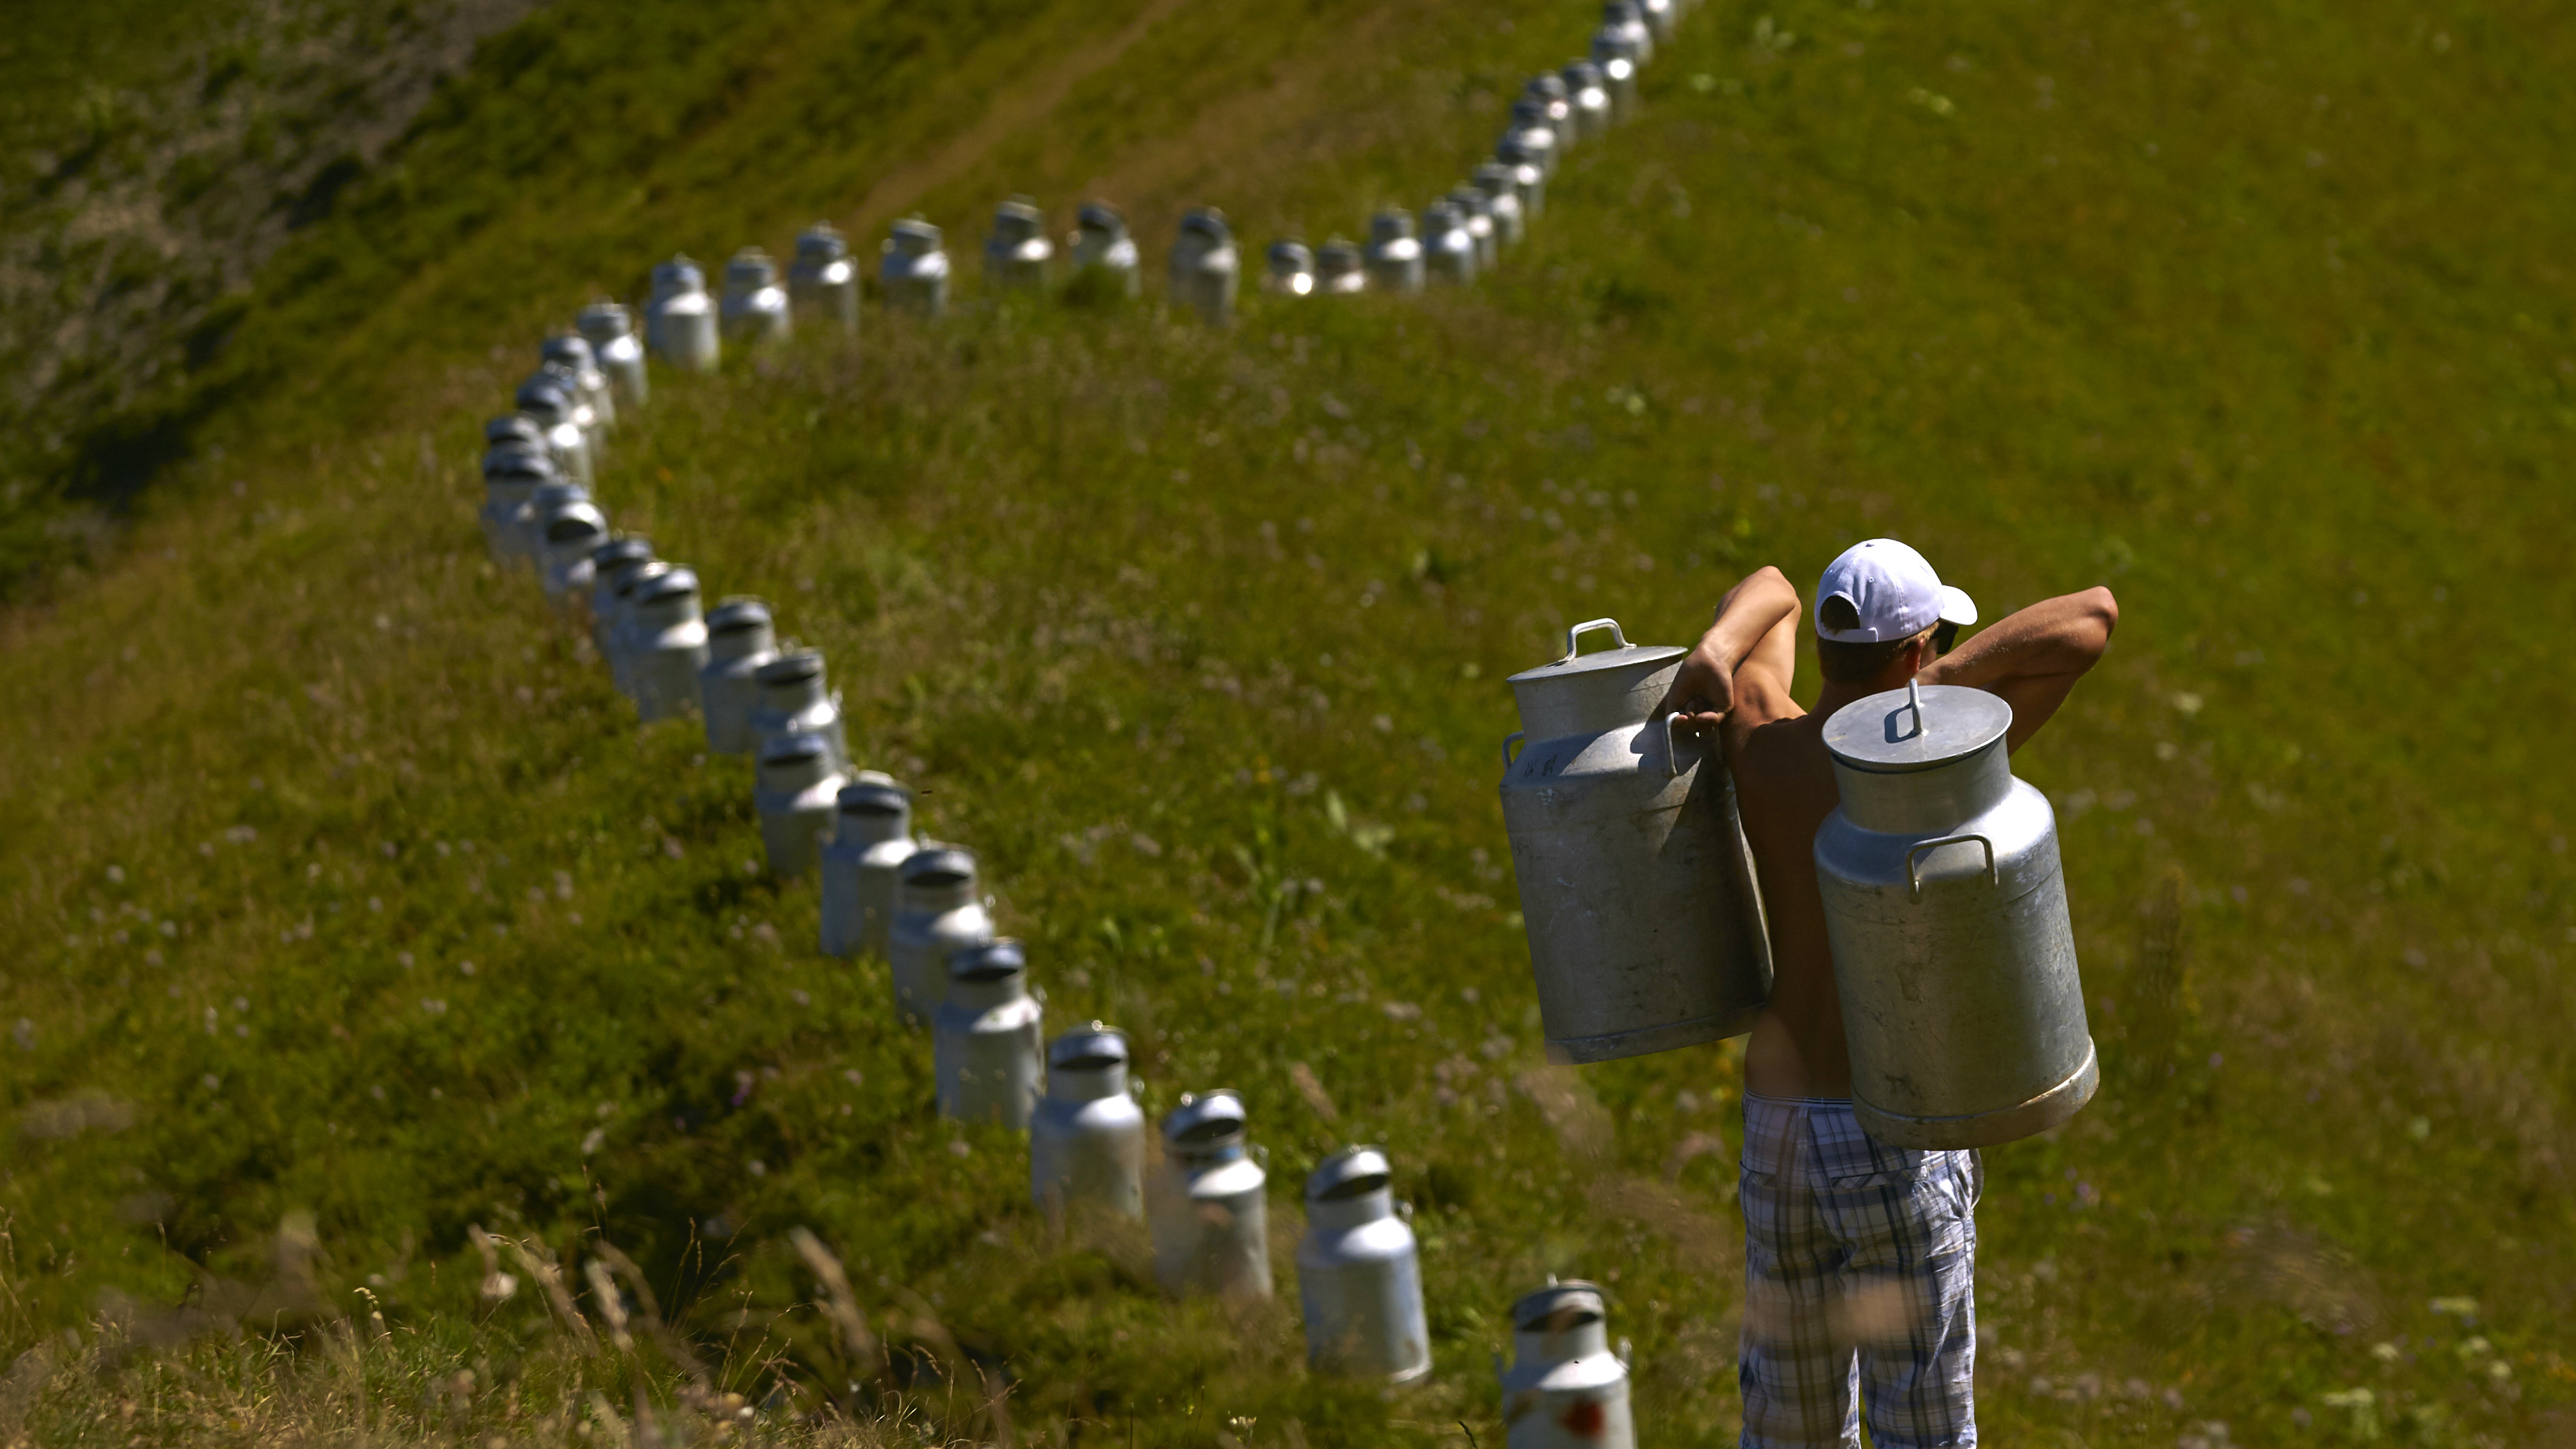 """A volunteer carries milk churns as he helps land art artist Gerard Benoit a la Guillaume to form an art installation at the Chenau de Mayen in the resort of Leysin, Switzerland August 7, 2015. More than 80 milk churns were placed between the Tour d'Ai and the Tour de Mayen summits at an altitude of 2,000 meters (6,561 feet) above sea level under the direction of the artist, to be photographed for his ongoing art project entitled """"Milk churns without borders"""". REUTERS/Denis Balibouse"""